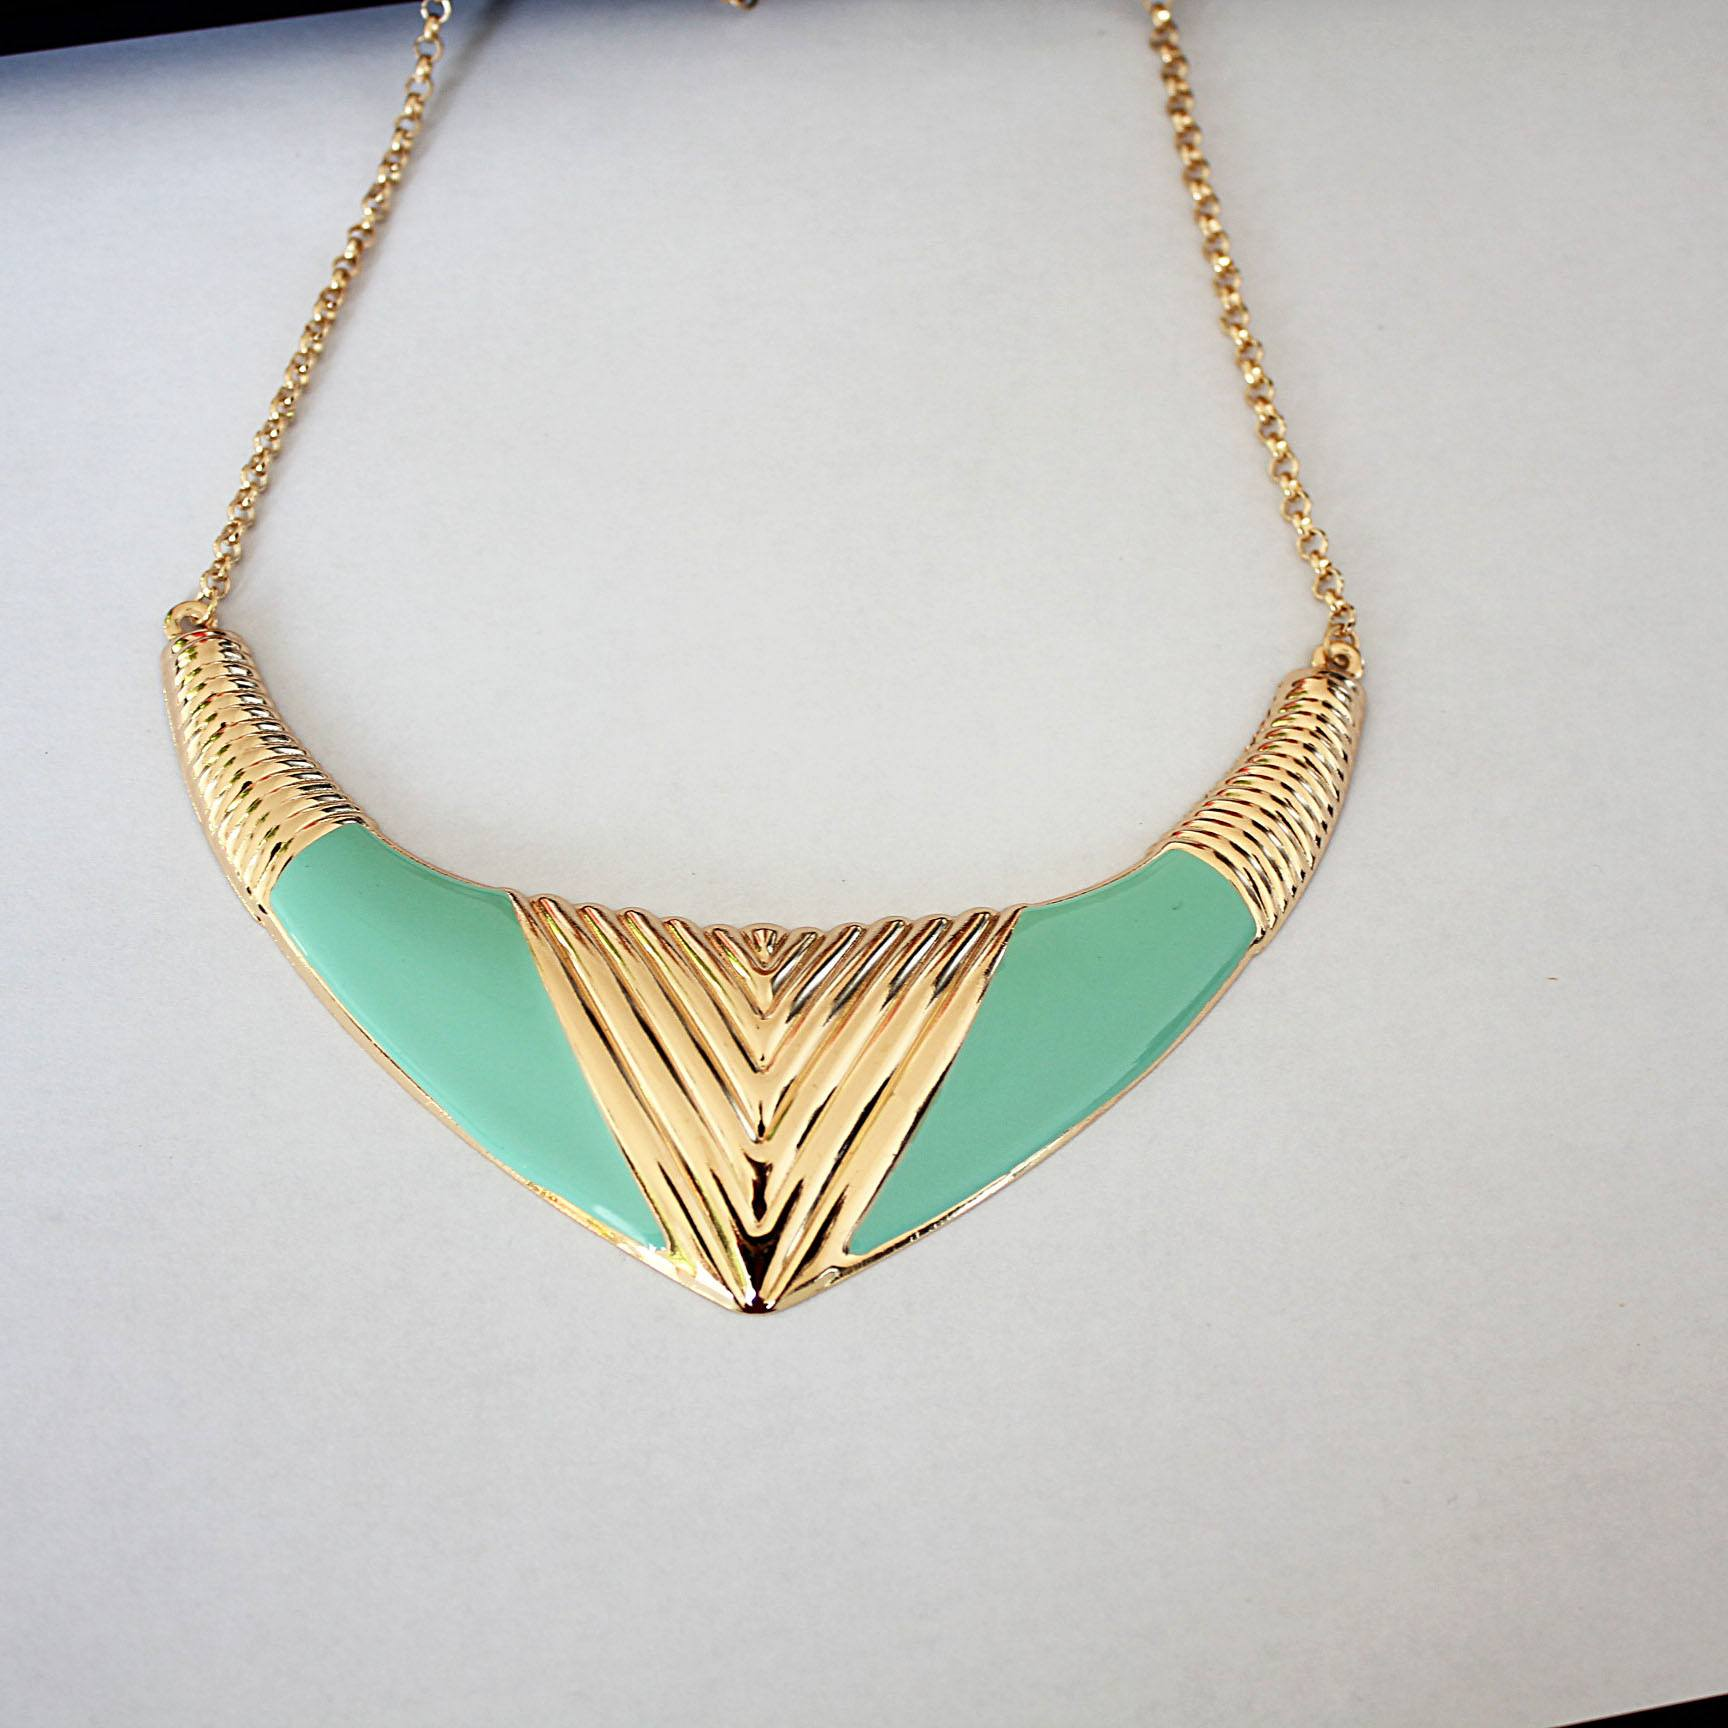 Free Jewelry - Trendy Multicolor Necklace - Clever Clad